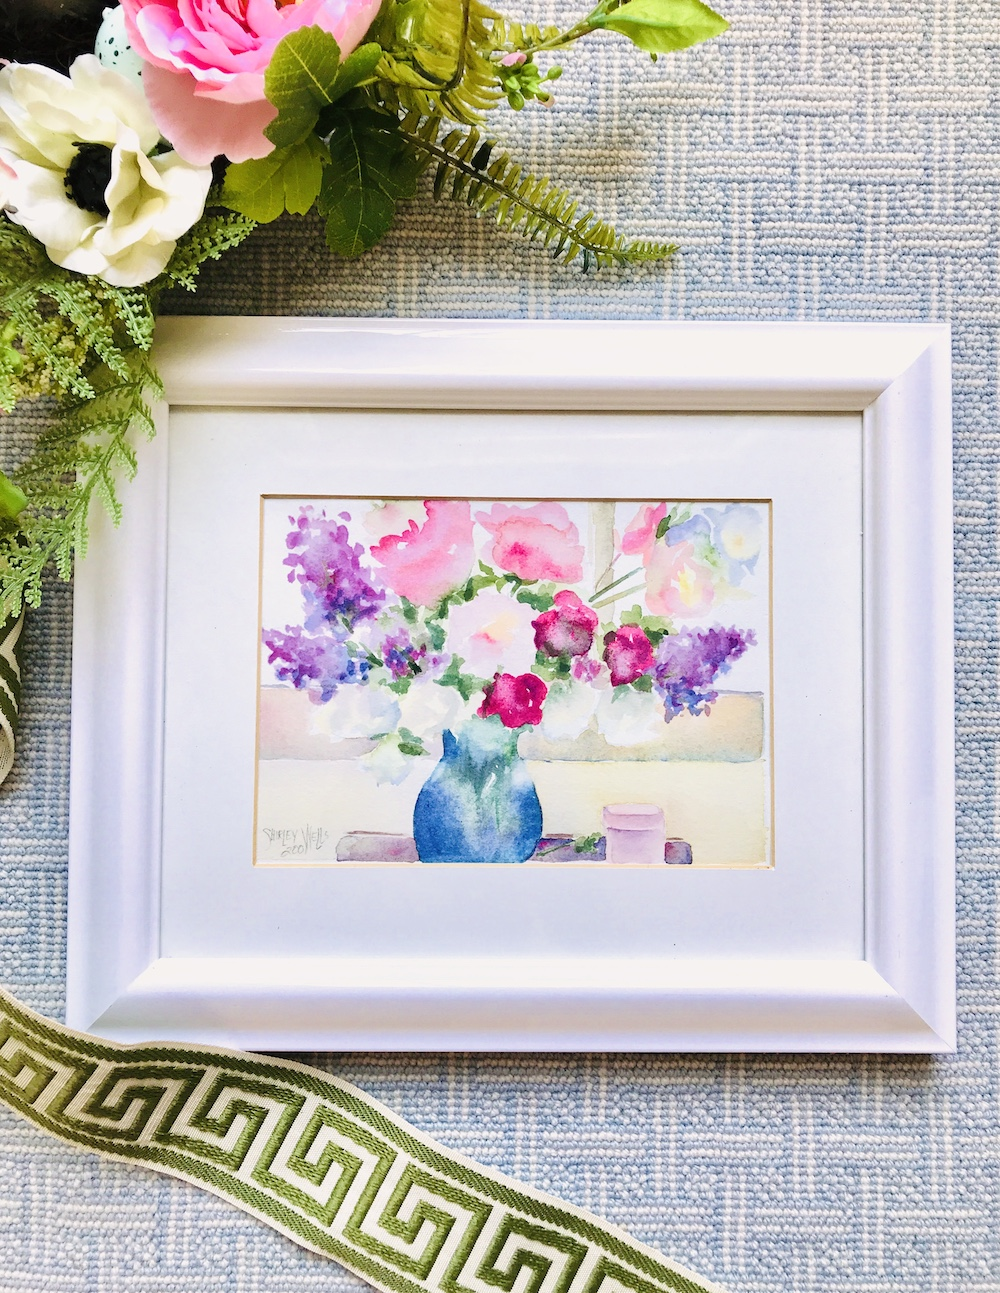 Watercolor floral still life by Shirley Wells